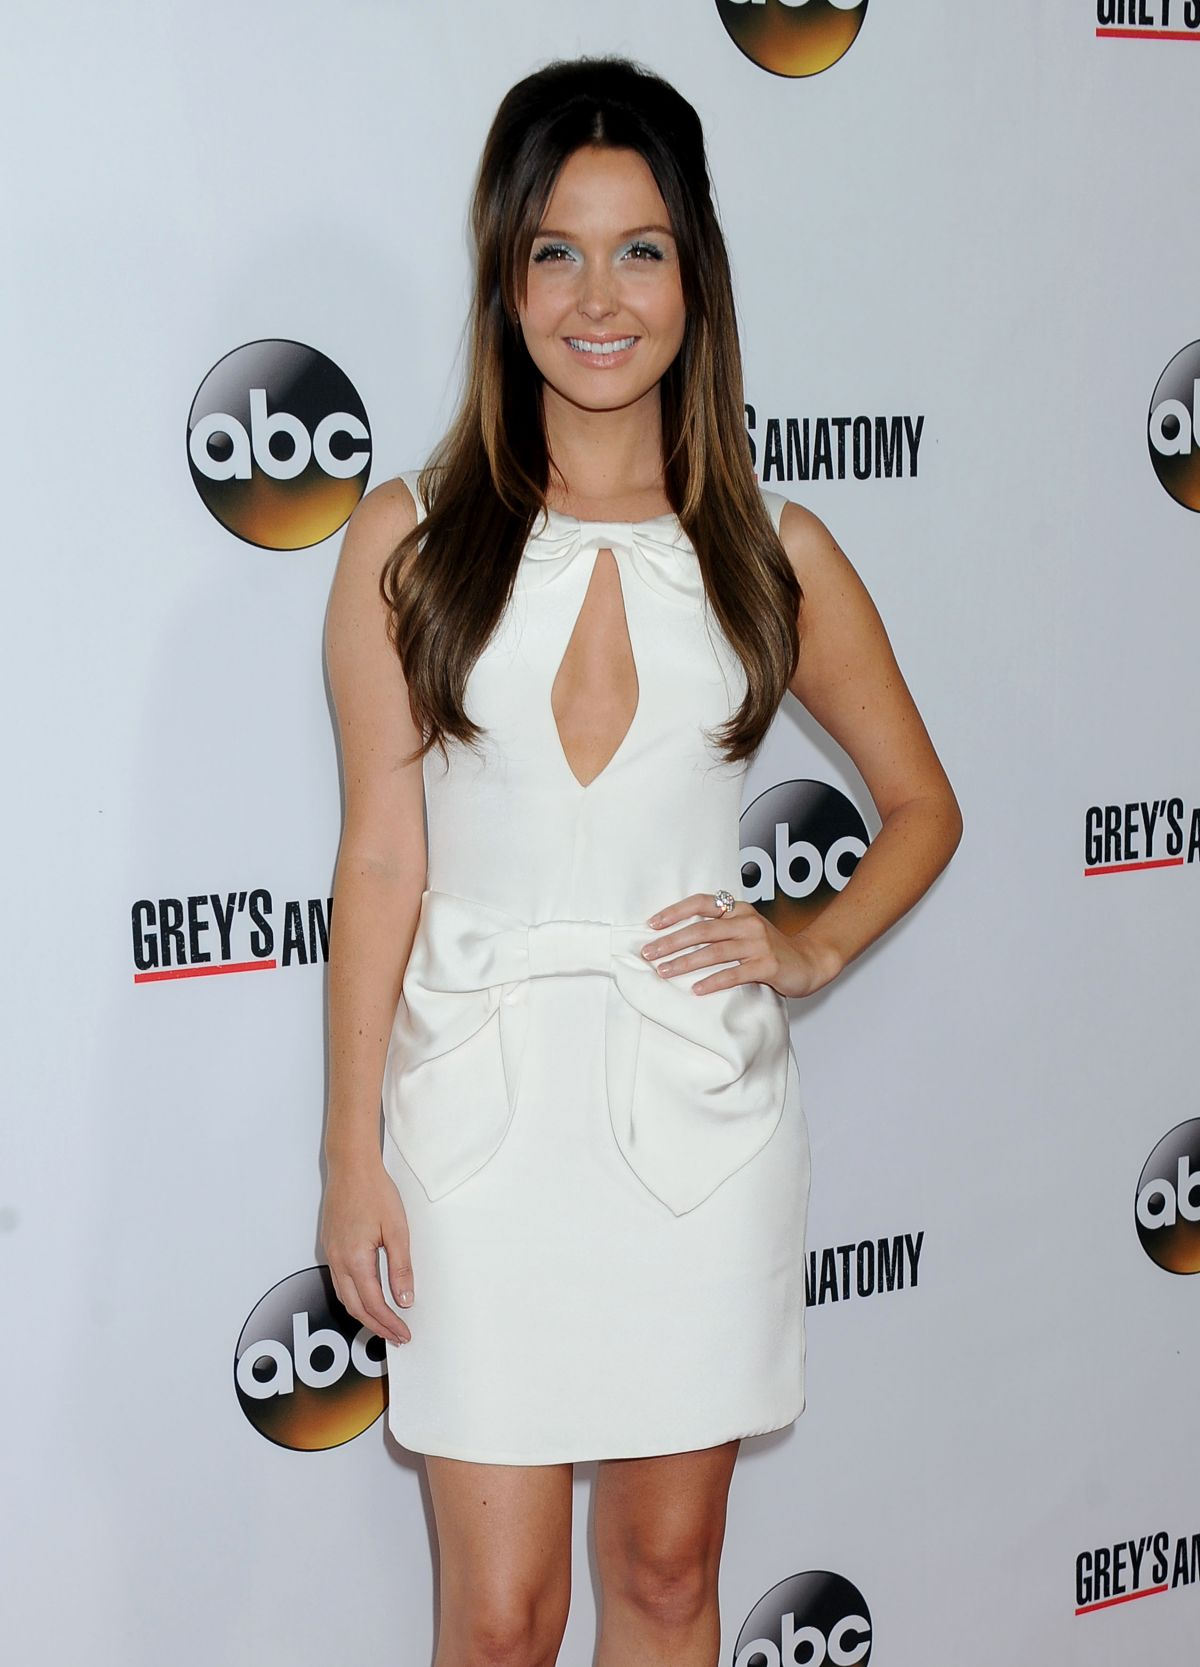 Camilla Luddington At 200th Episode Of Greys Anatomy Party - Celebzz